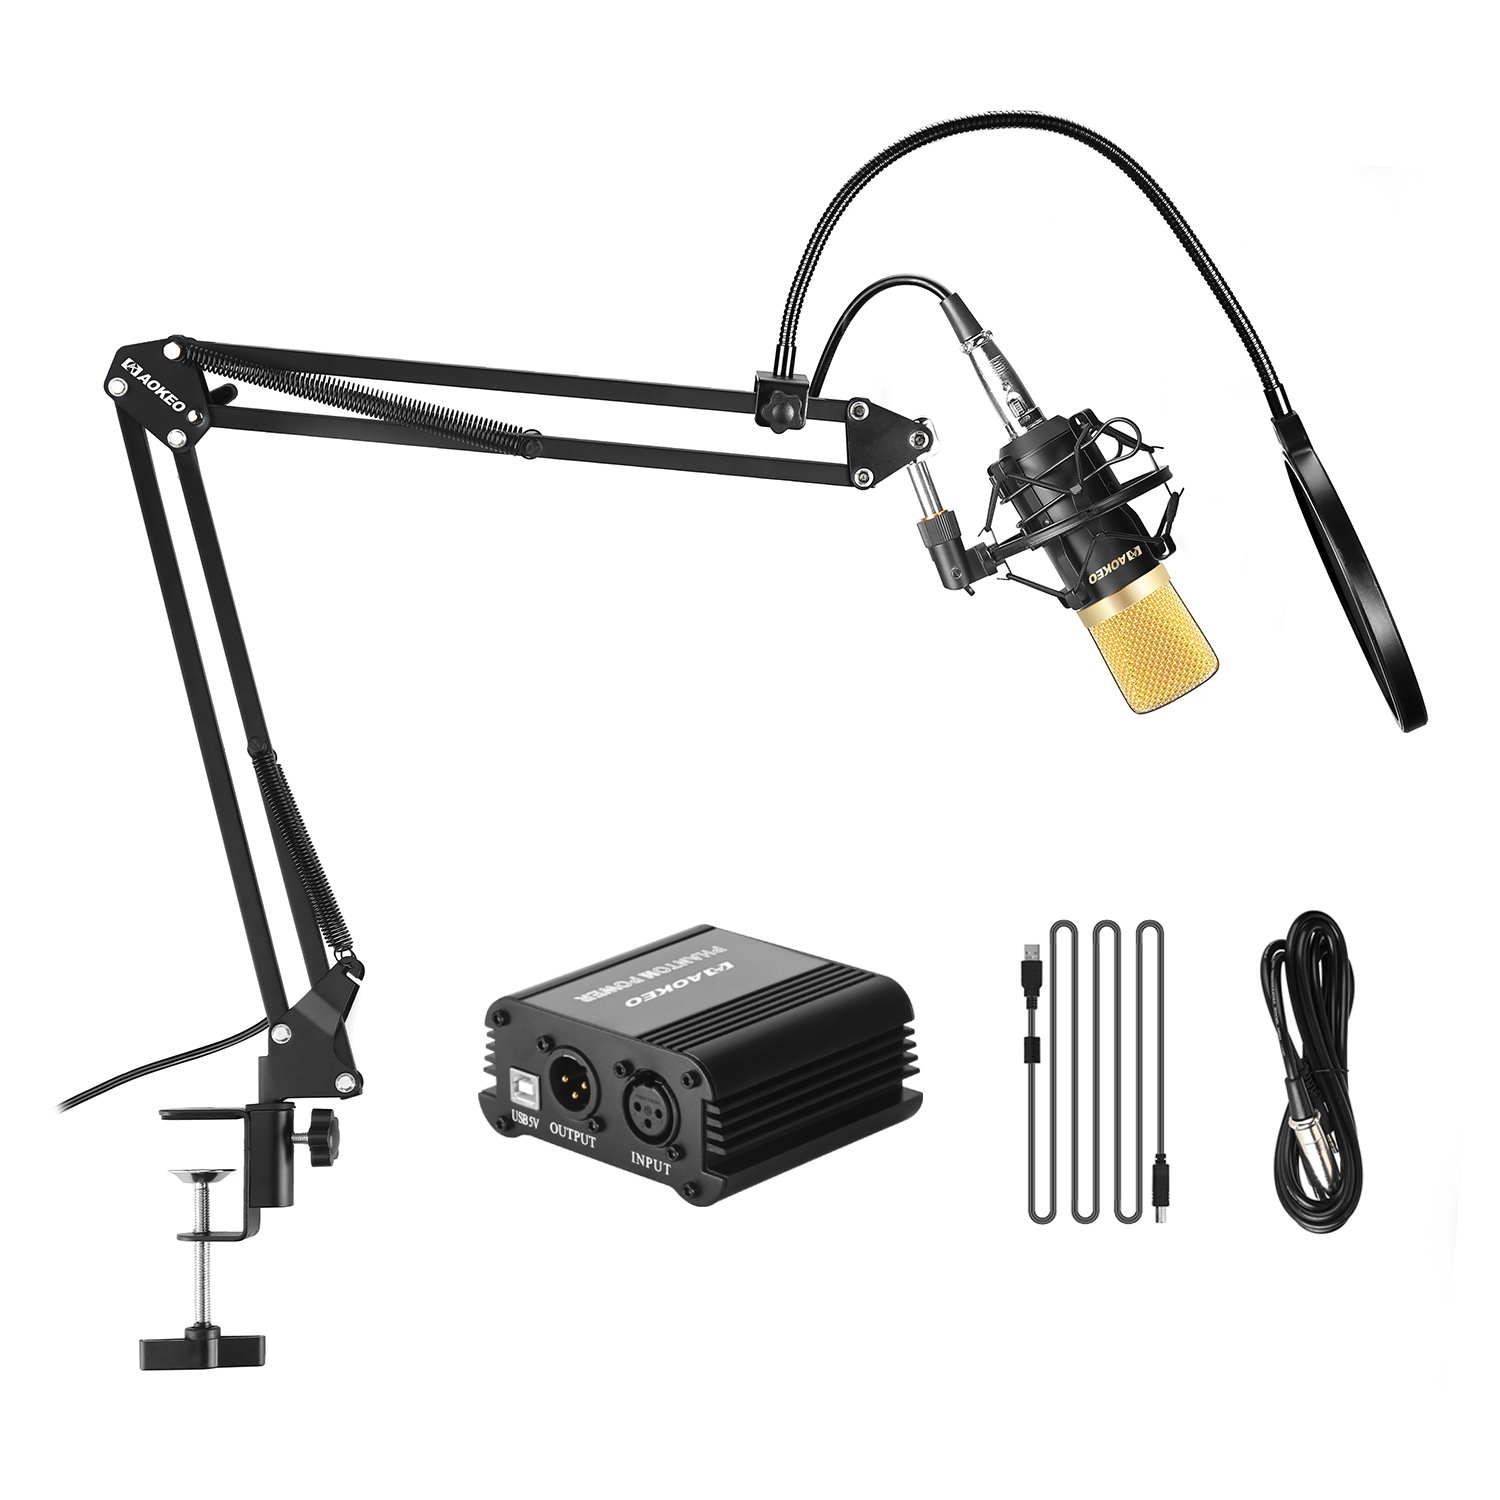 Aokeo AK-70 Professional Studio Live Stream Broadcasting Recording Condenser Microphone With AK-35 Suspension Scissor Arm Stand, Shock Mount, Pop Filter, 48V Phantom Power Supply and Mounting Clamp